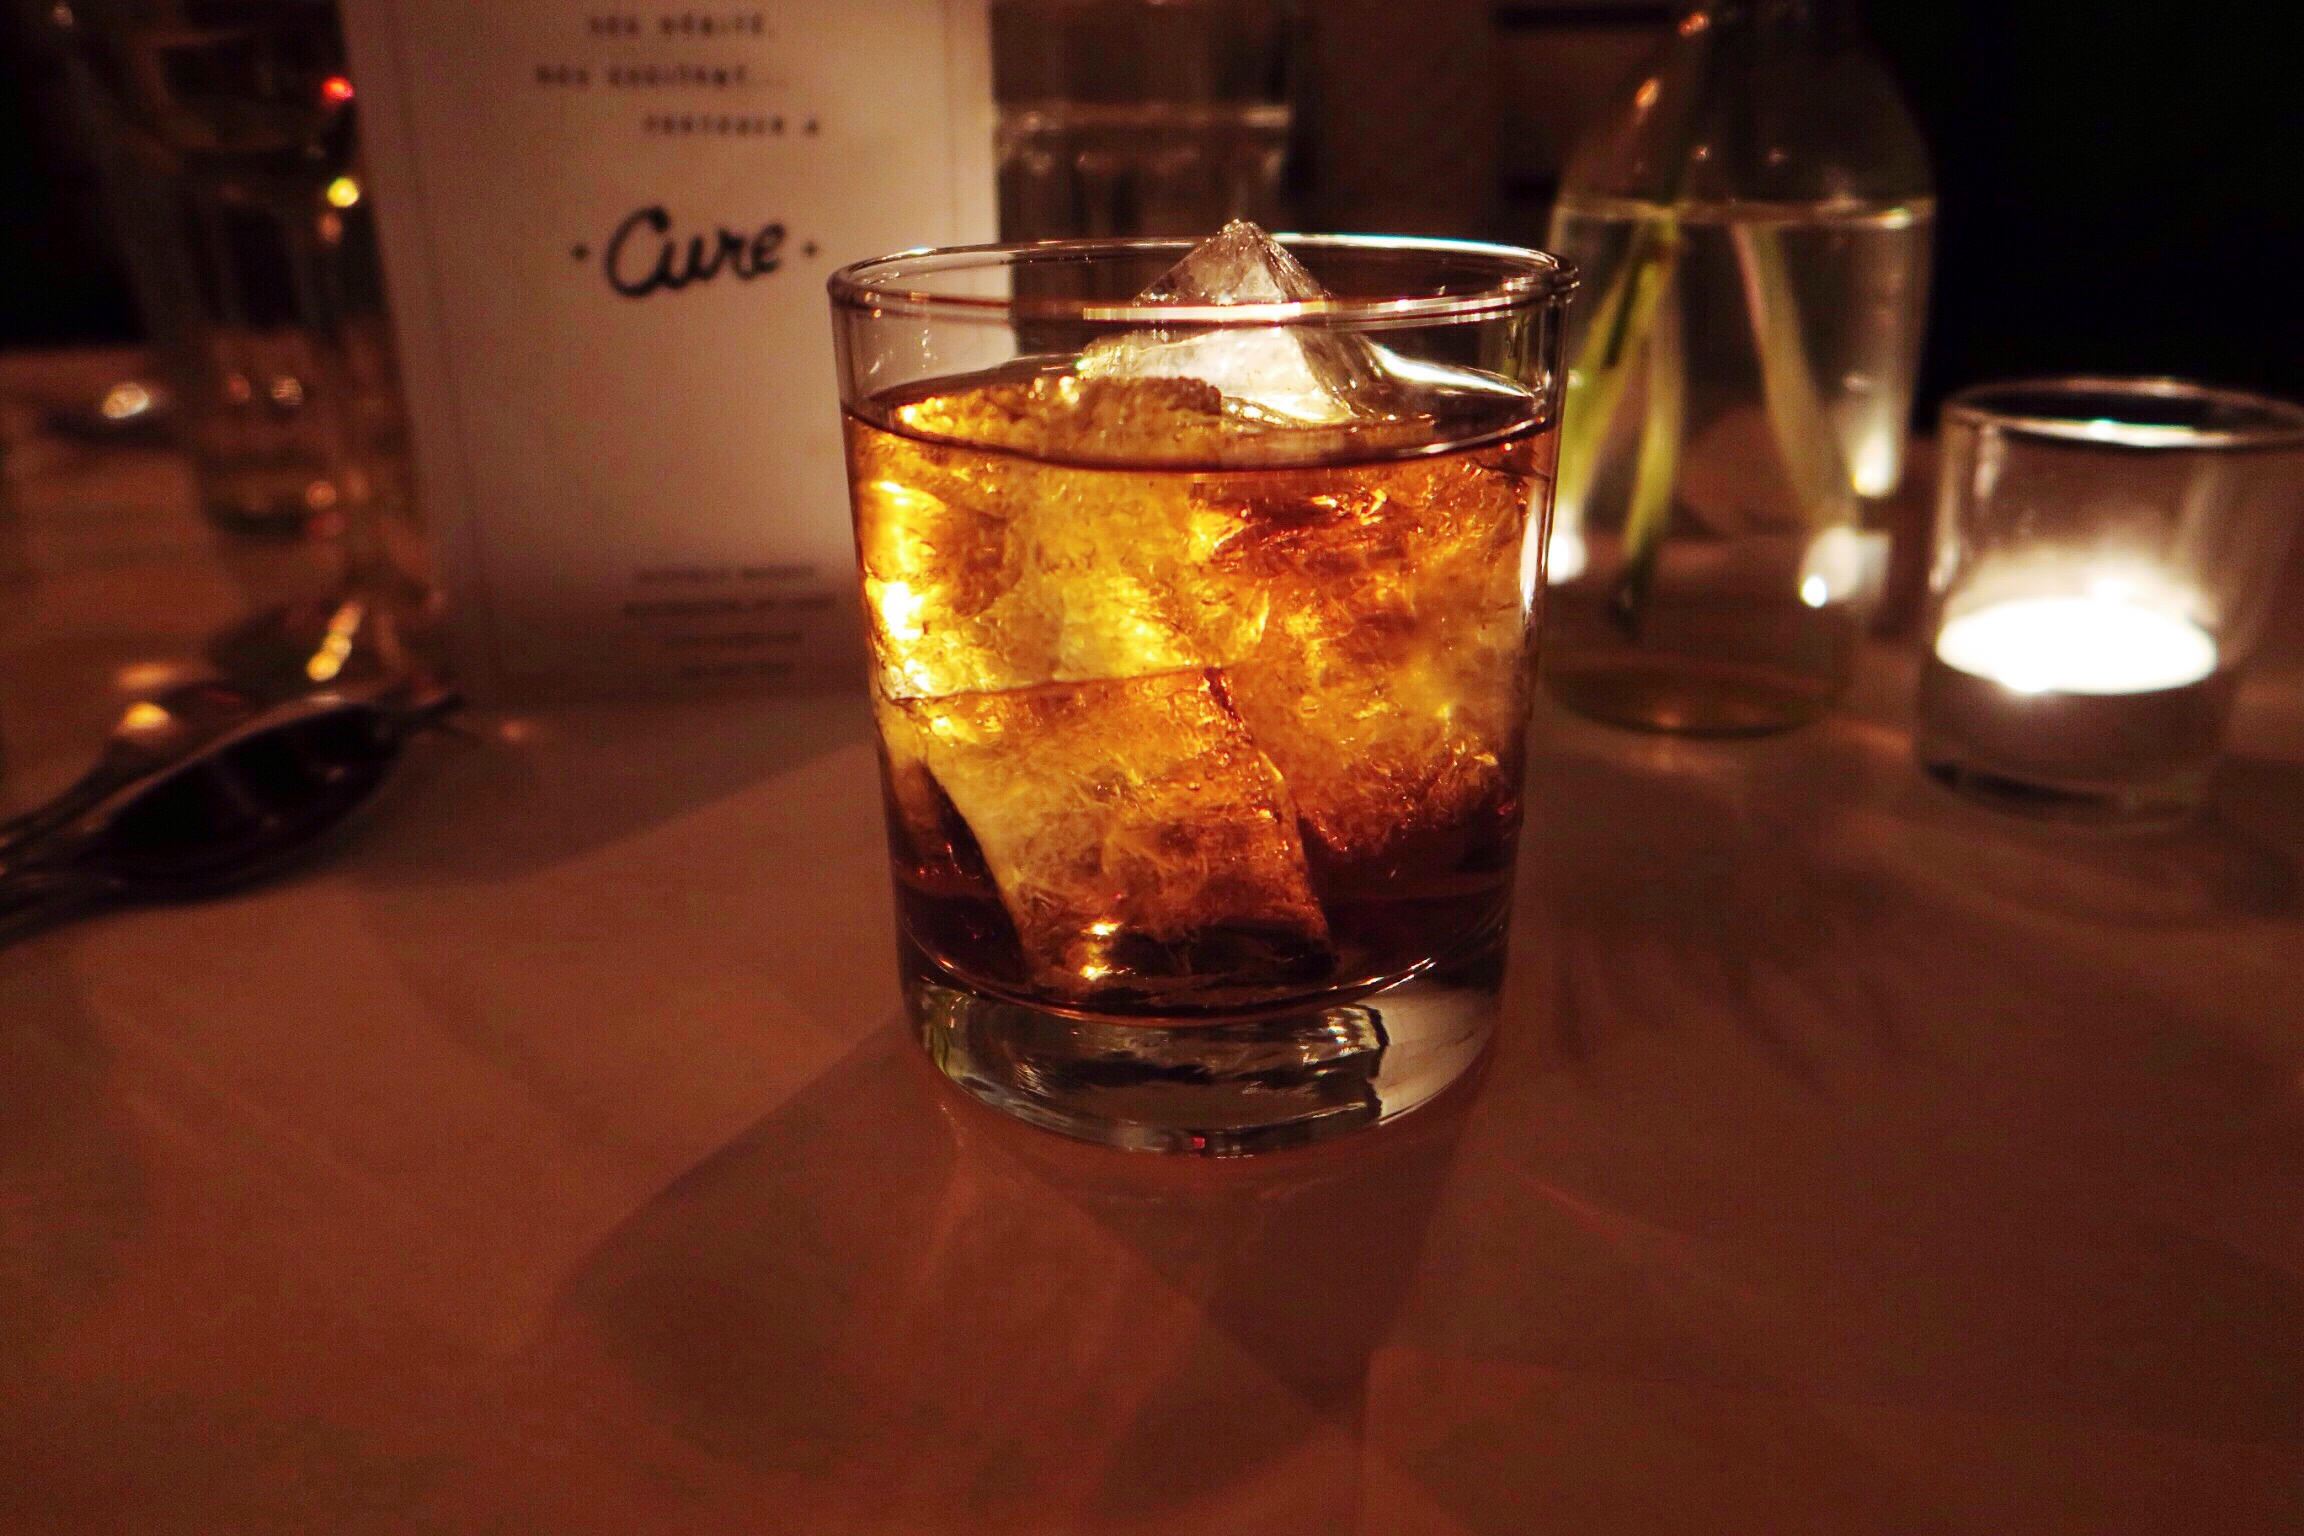 Try the Goat Hill at Cure with Wiser's Rye, Black Bottle Scotch (Scotchyscotch scotch), Cardamaro, Carpano antica, and lemon bitters. So manly & Ron Burgundy like!